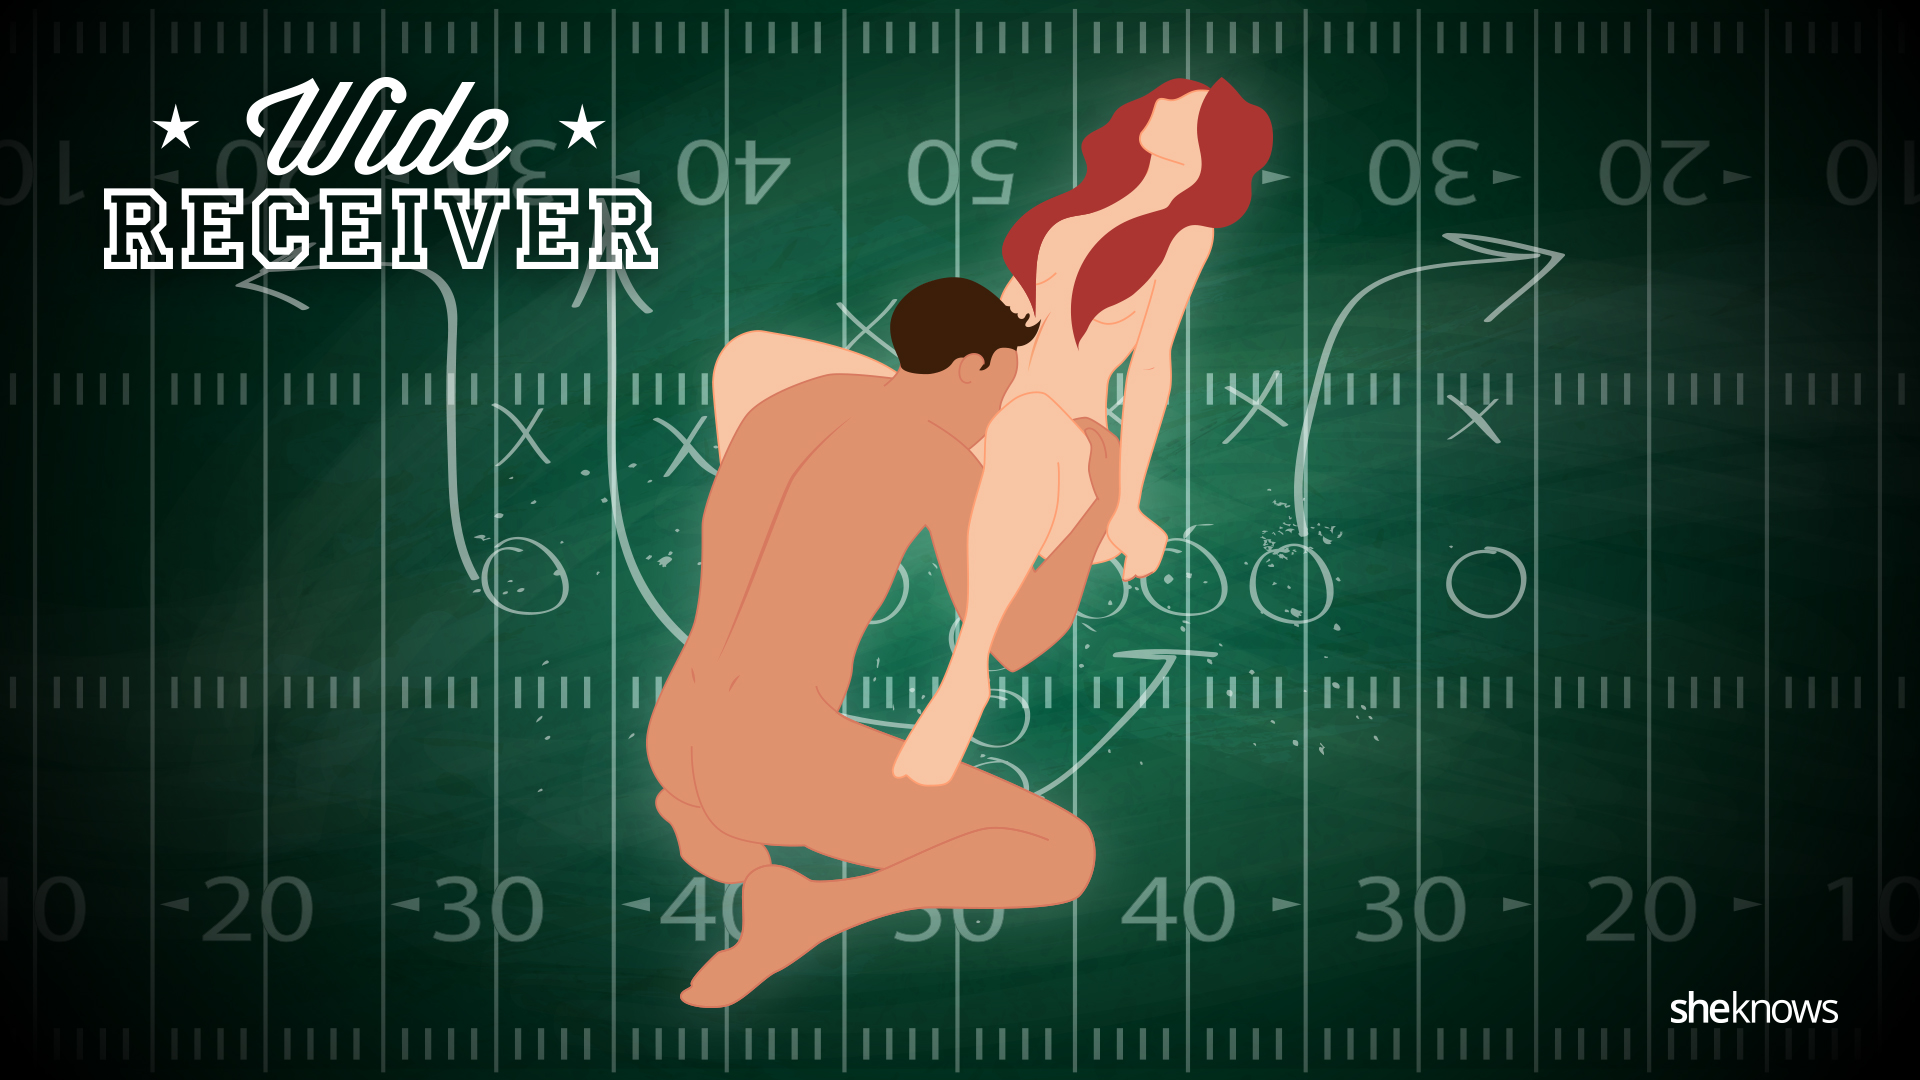 Football-inspired sex positions for halftime: Wide Receiver